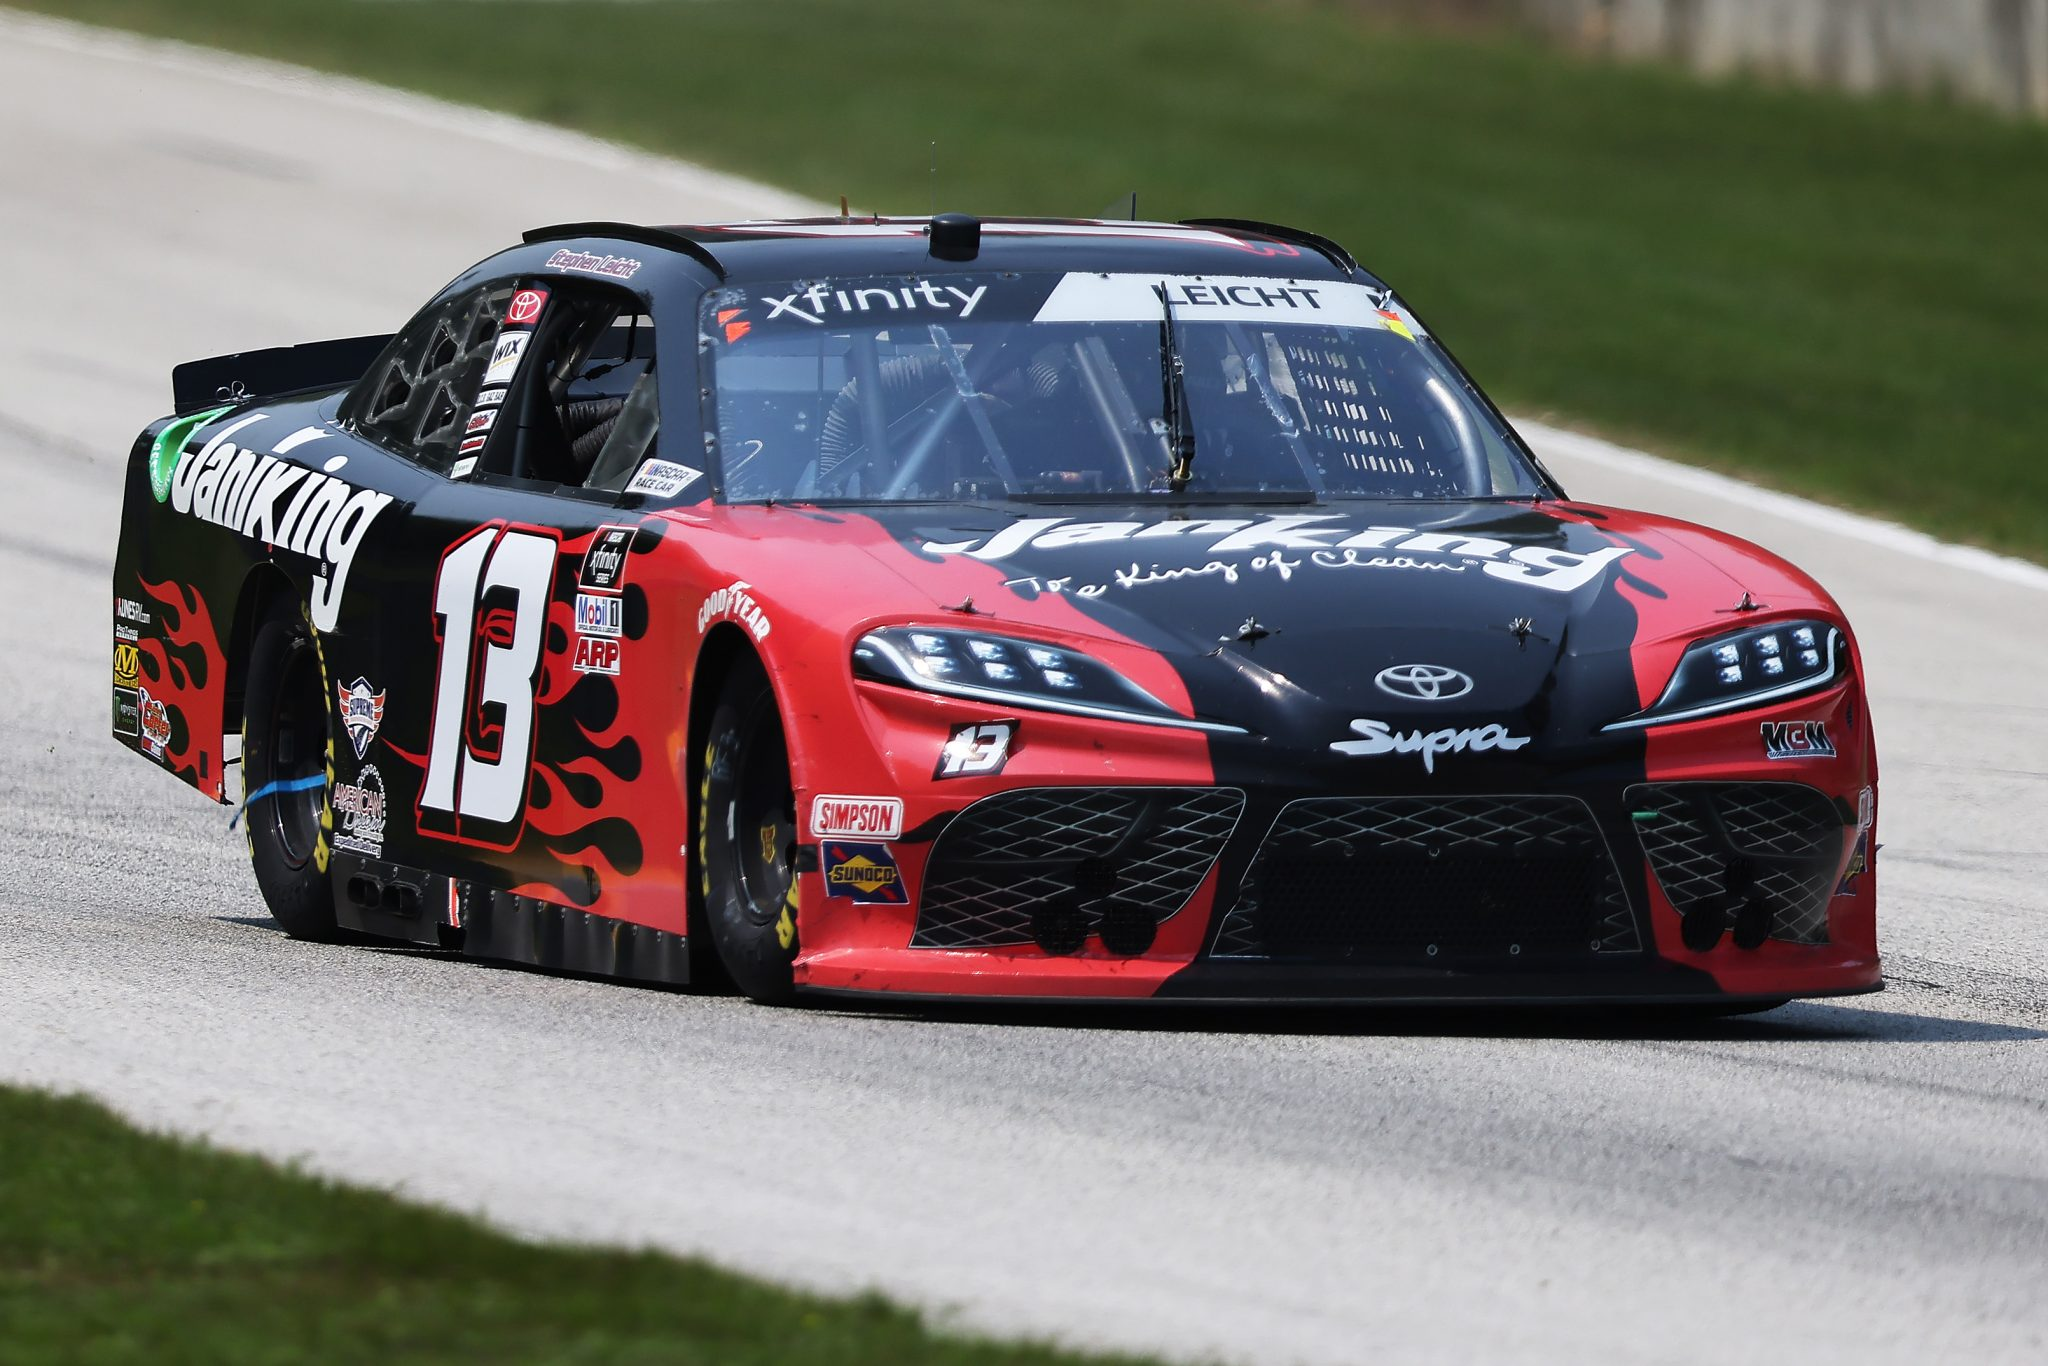 ELKHART LAKE, WISCONSIN - JULY 03: Stephen Leicht, driver of the #13 Janiking Toyota, drives during the NASCAR Xfinity Series Henry 180 at Road America on July 03, 2021 in Elkhart Lake, Wisconsin. (Photo by James Gilbert/Getty Images)   Getty Images